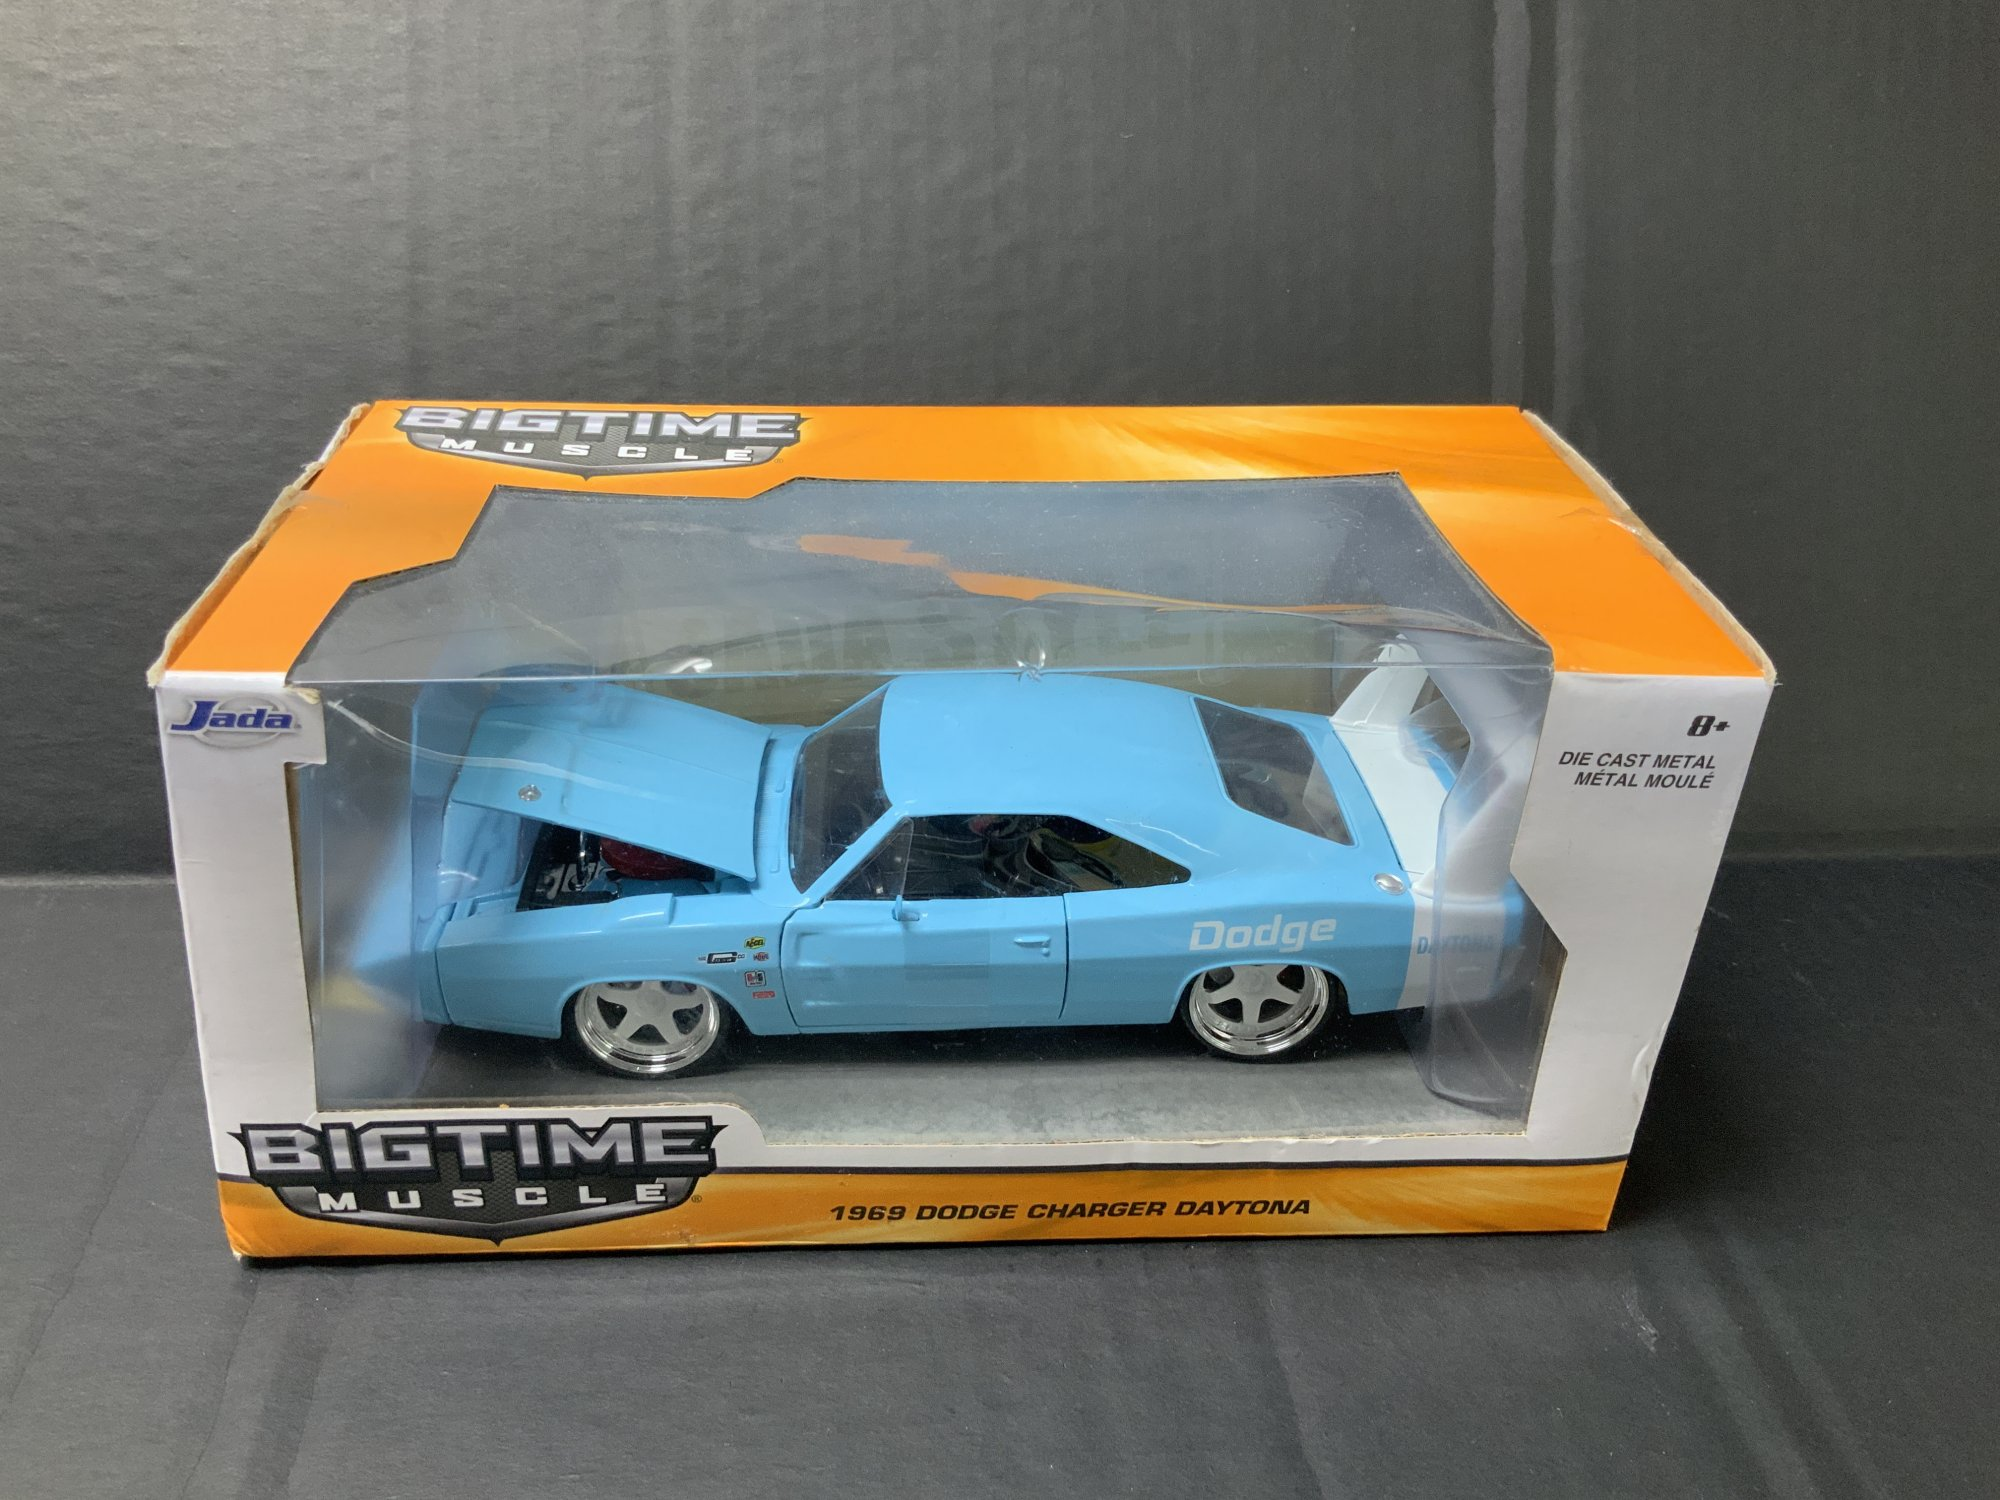 Jada Bigtime Muscle 1969 Dodge Charger Daytona 1:24 scale